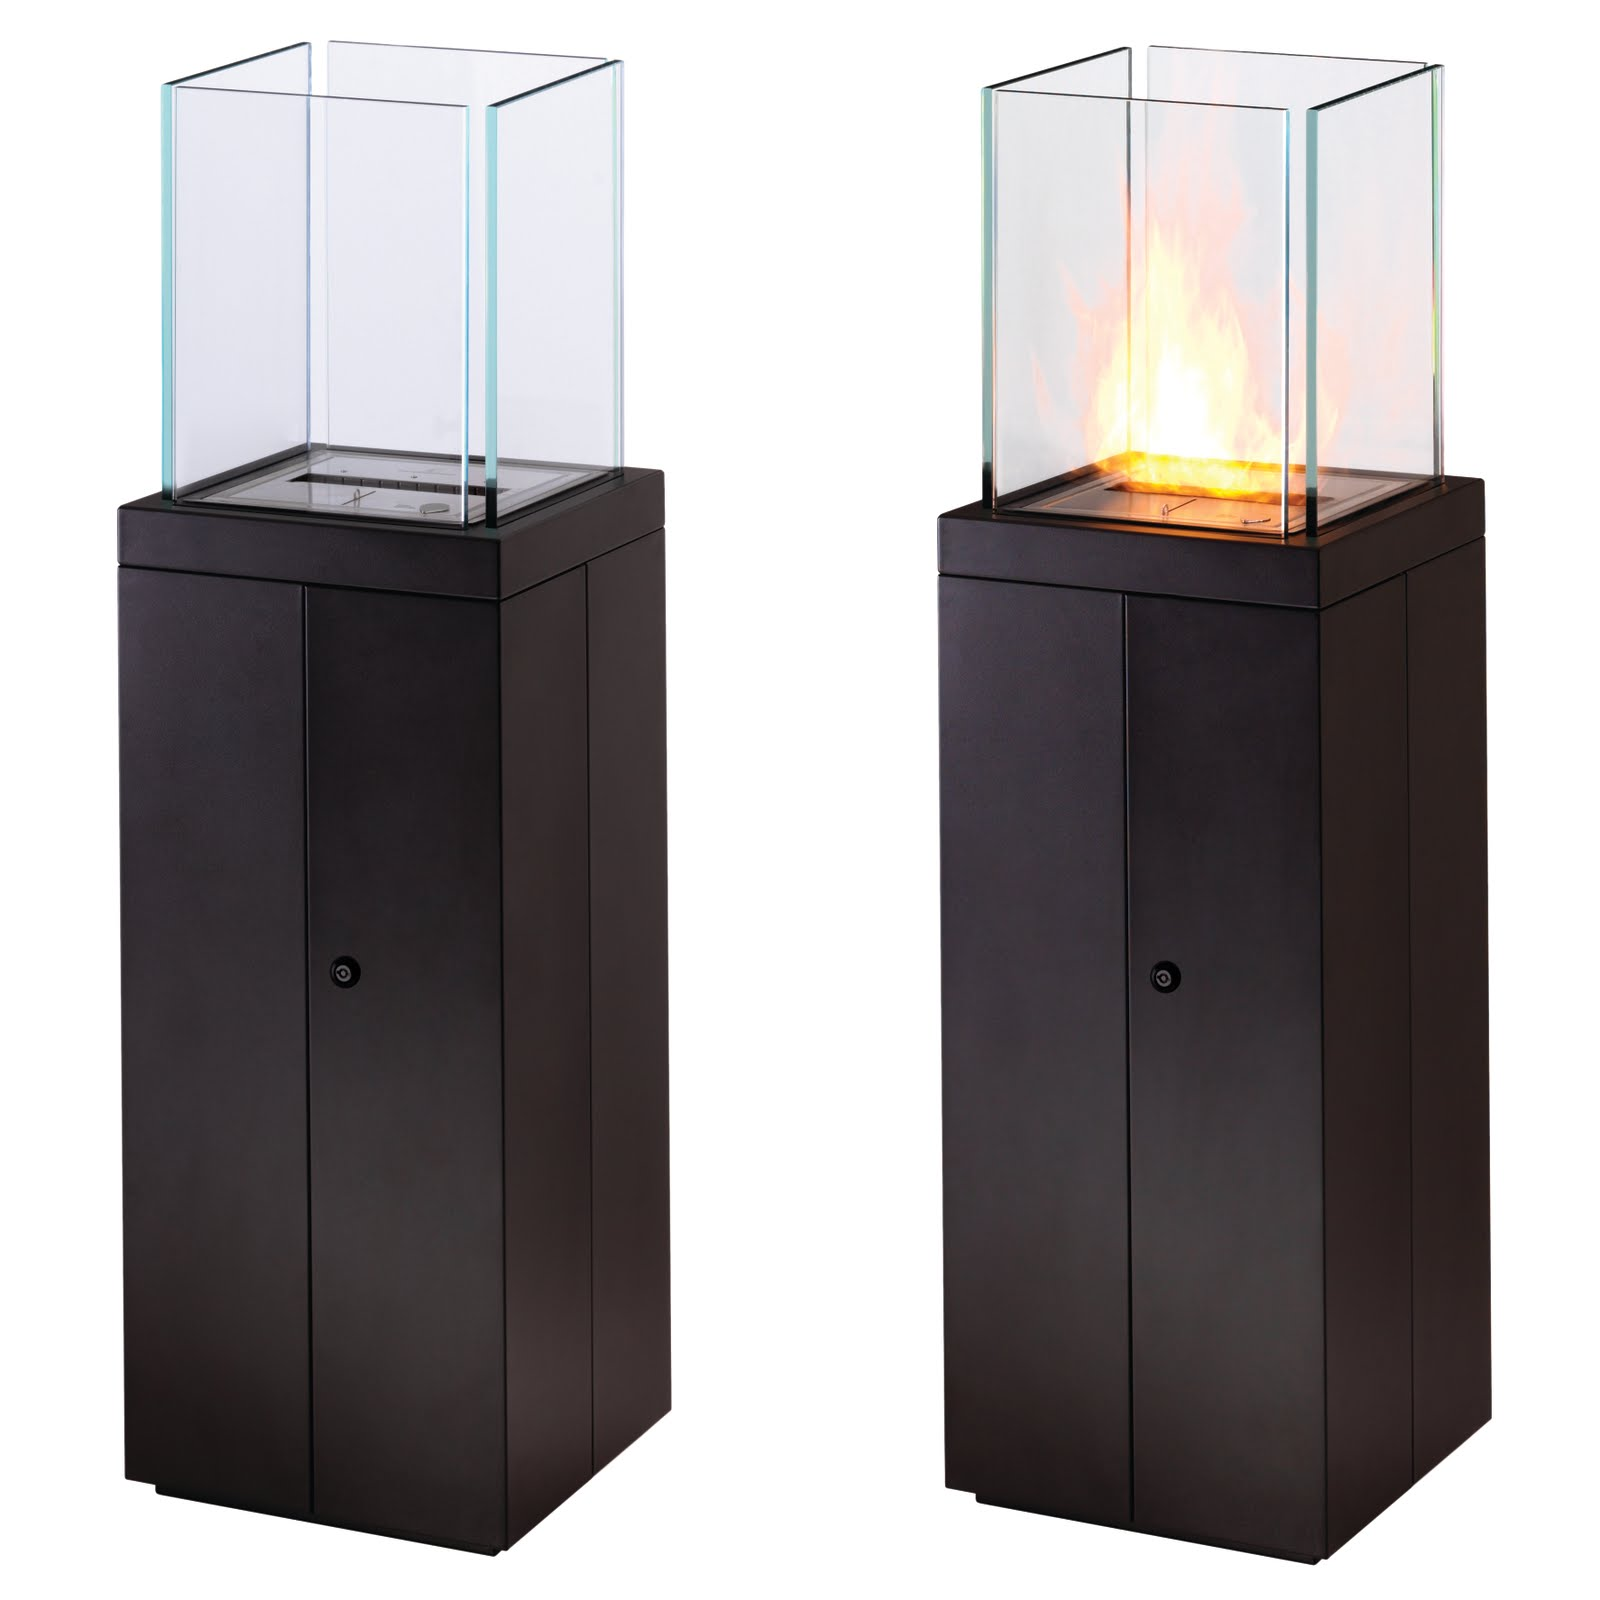 Tr123 Modern Outdoor Non Gas Tower Fireplace From Ecosmart